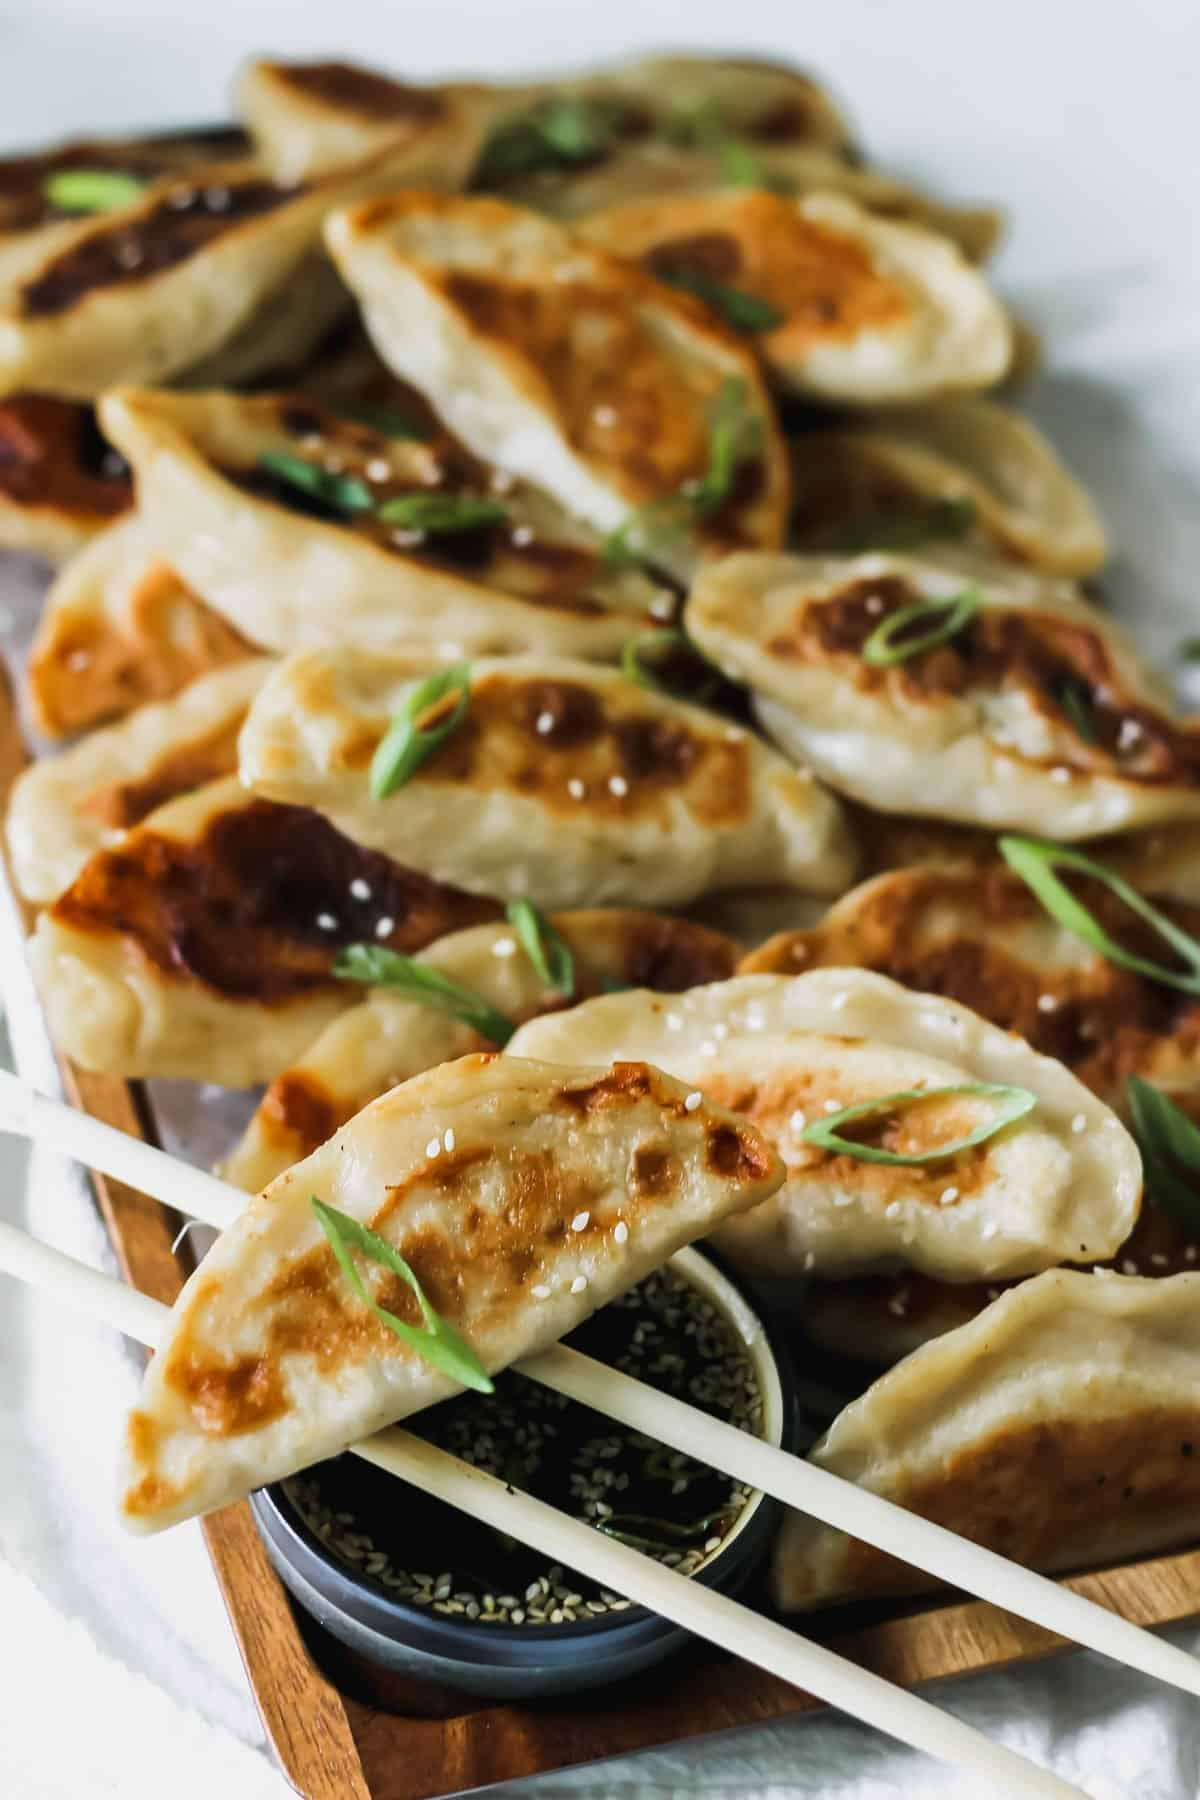 Chinese chicken dumplings with sesame soy sauce on a wooden tray with a white napkin behind it.